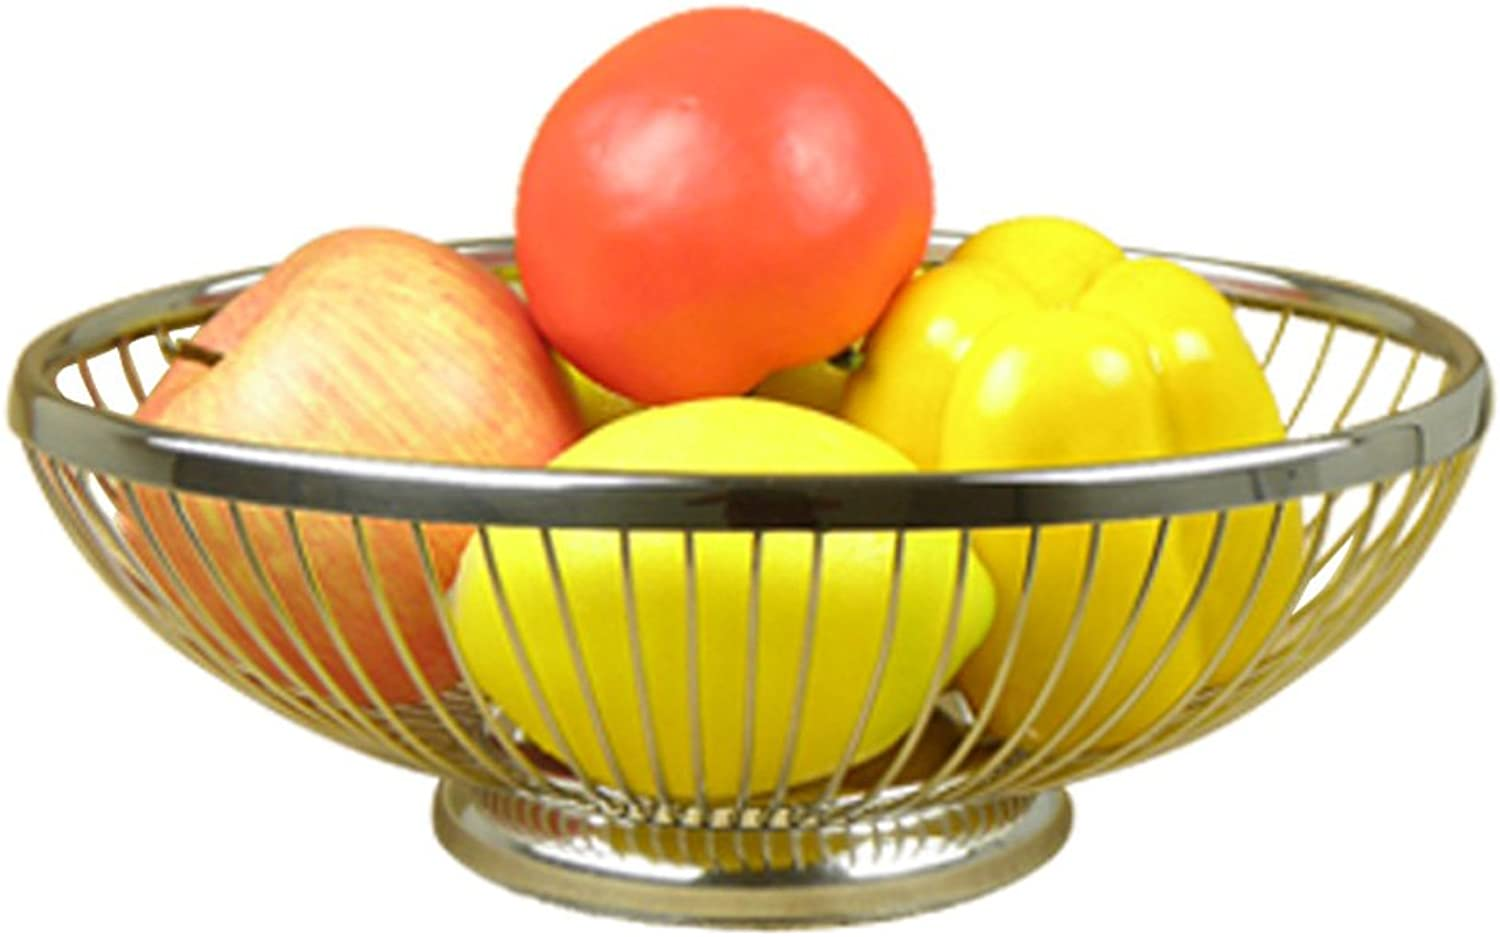 Porte-fruits en acier inoxydable Bowl Club Dinning Table Décoration Panier de fruits Argent